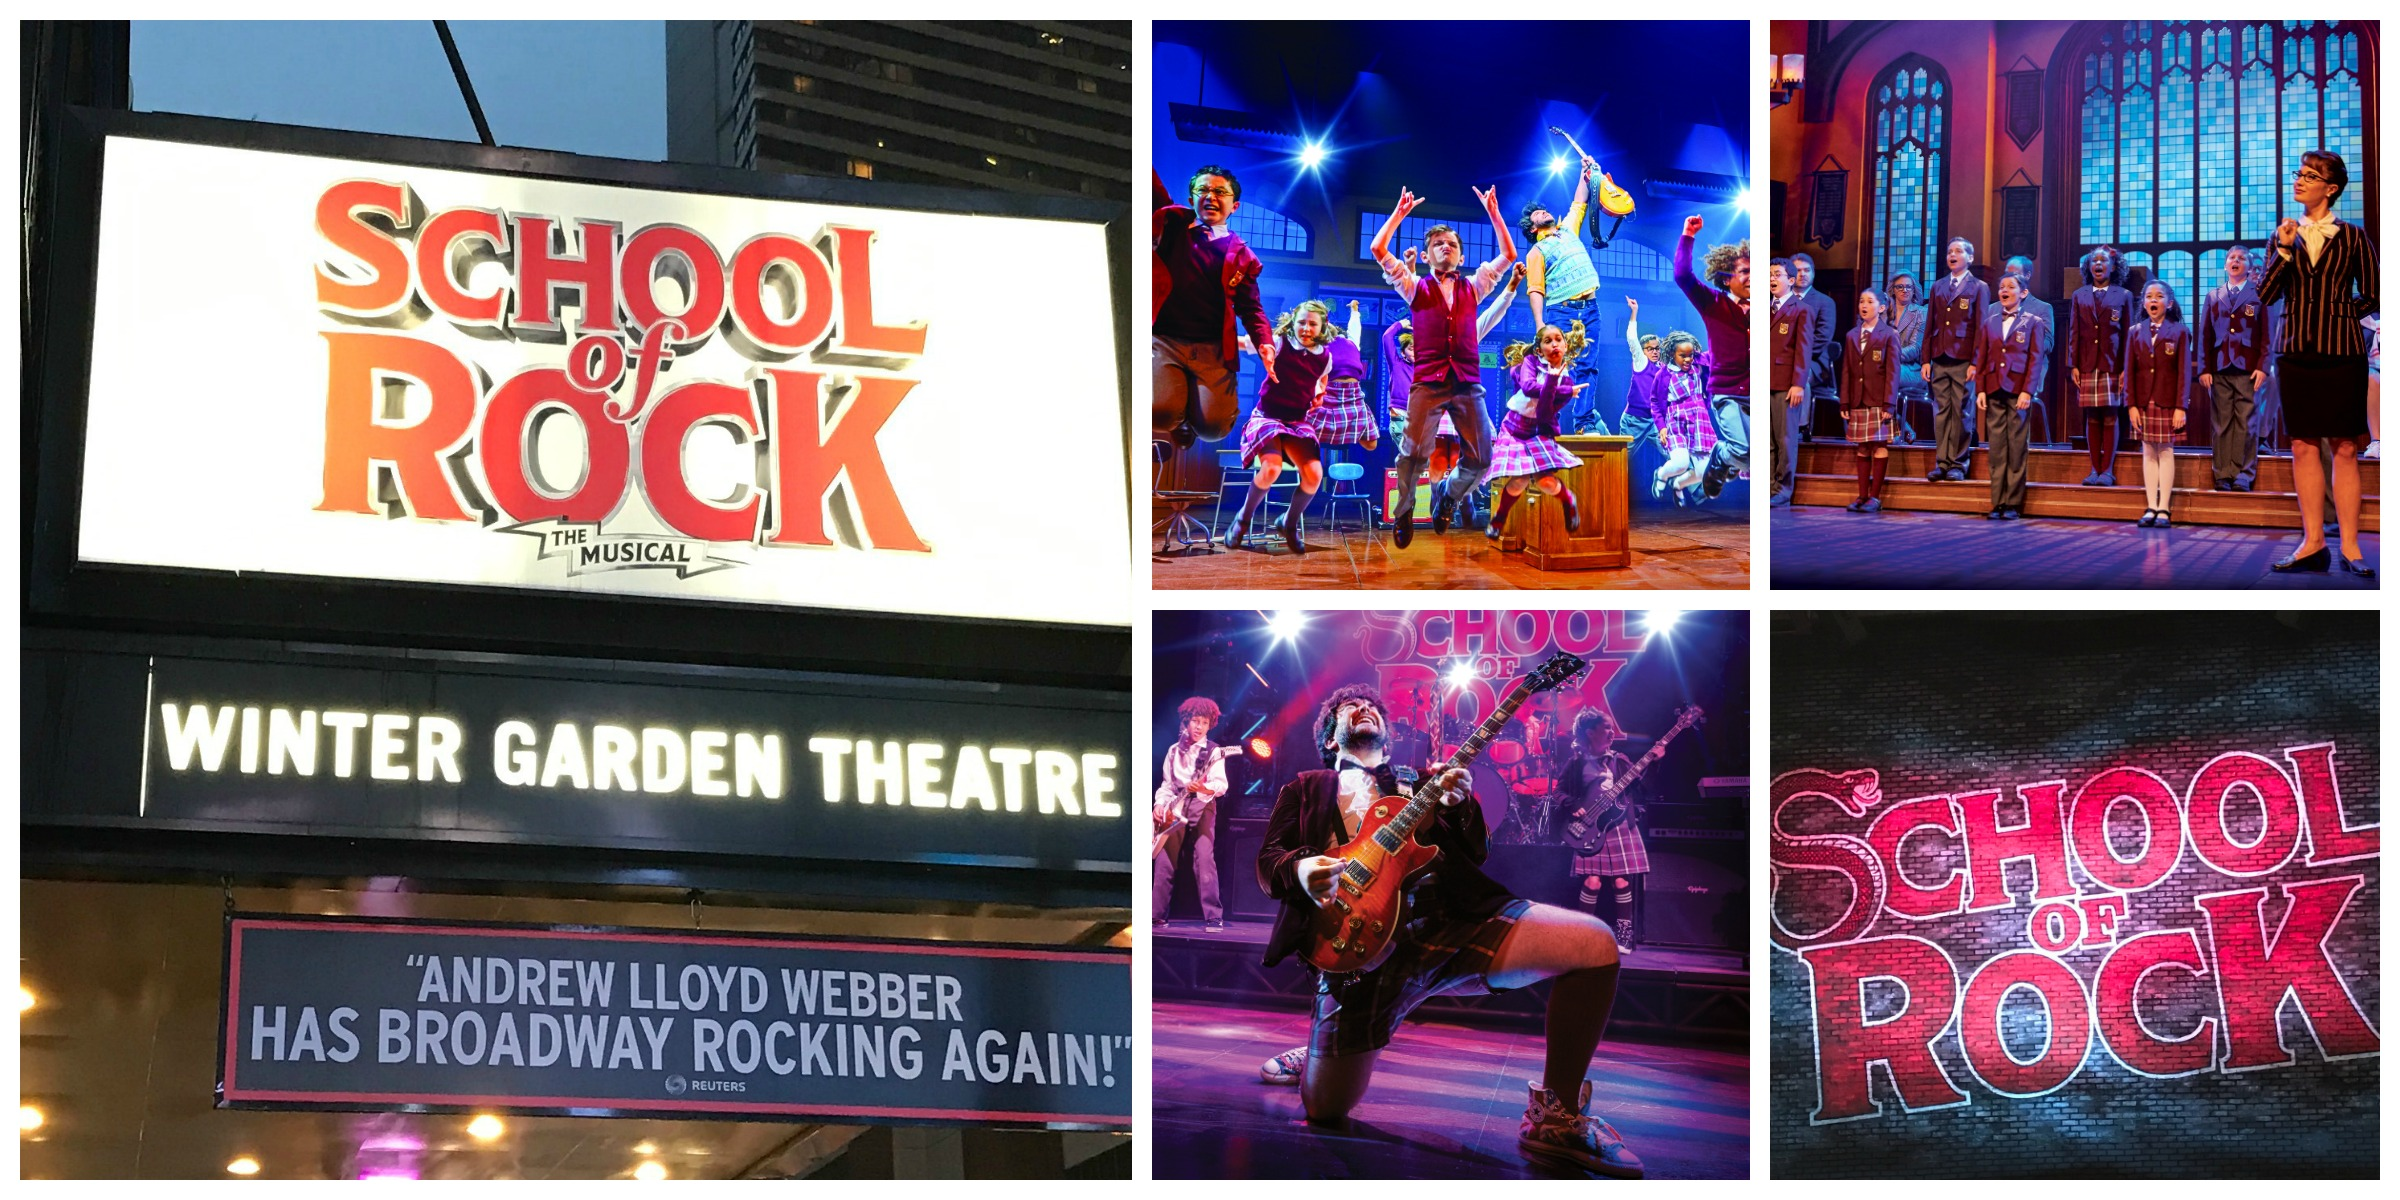 REVIEW: School of Rock is a Rocking Good Time @SoRmusical #SchoolofRock